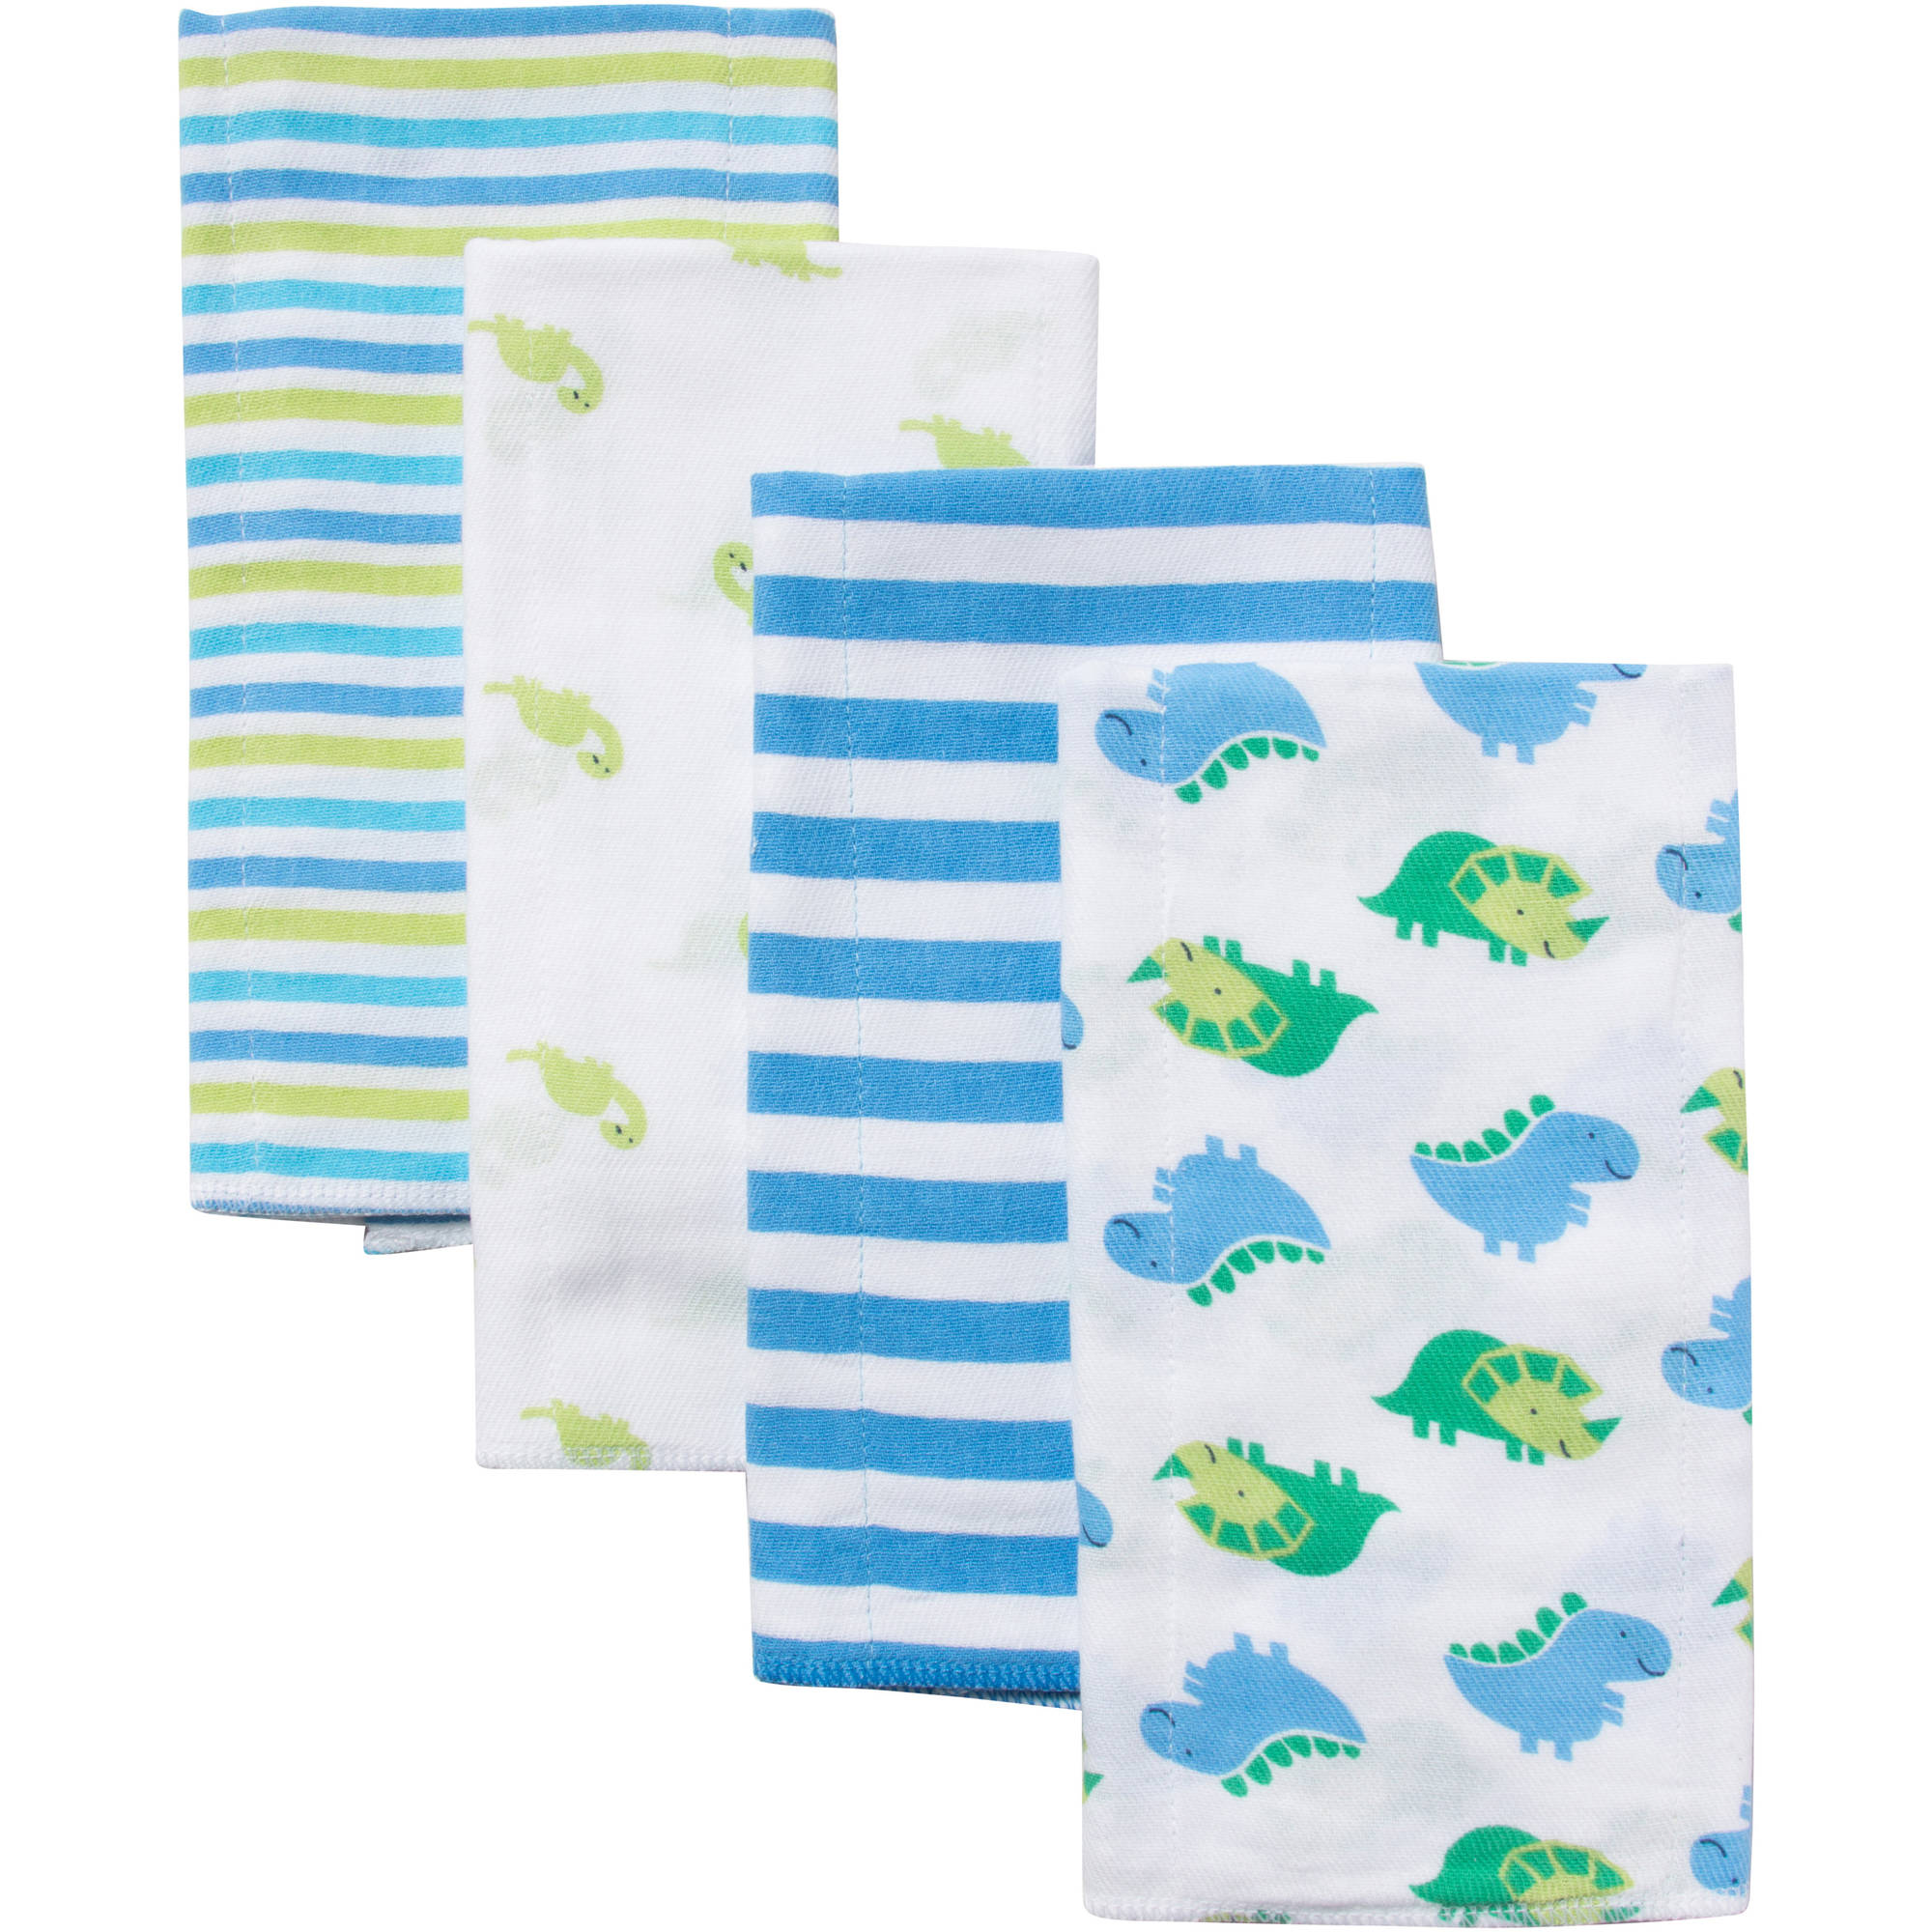 Gerber Prefold Diaper Burp Cloths, Boy Animal Print, 4 count